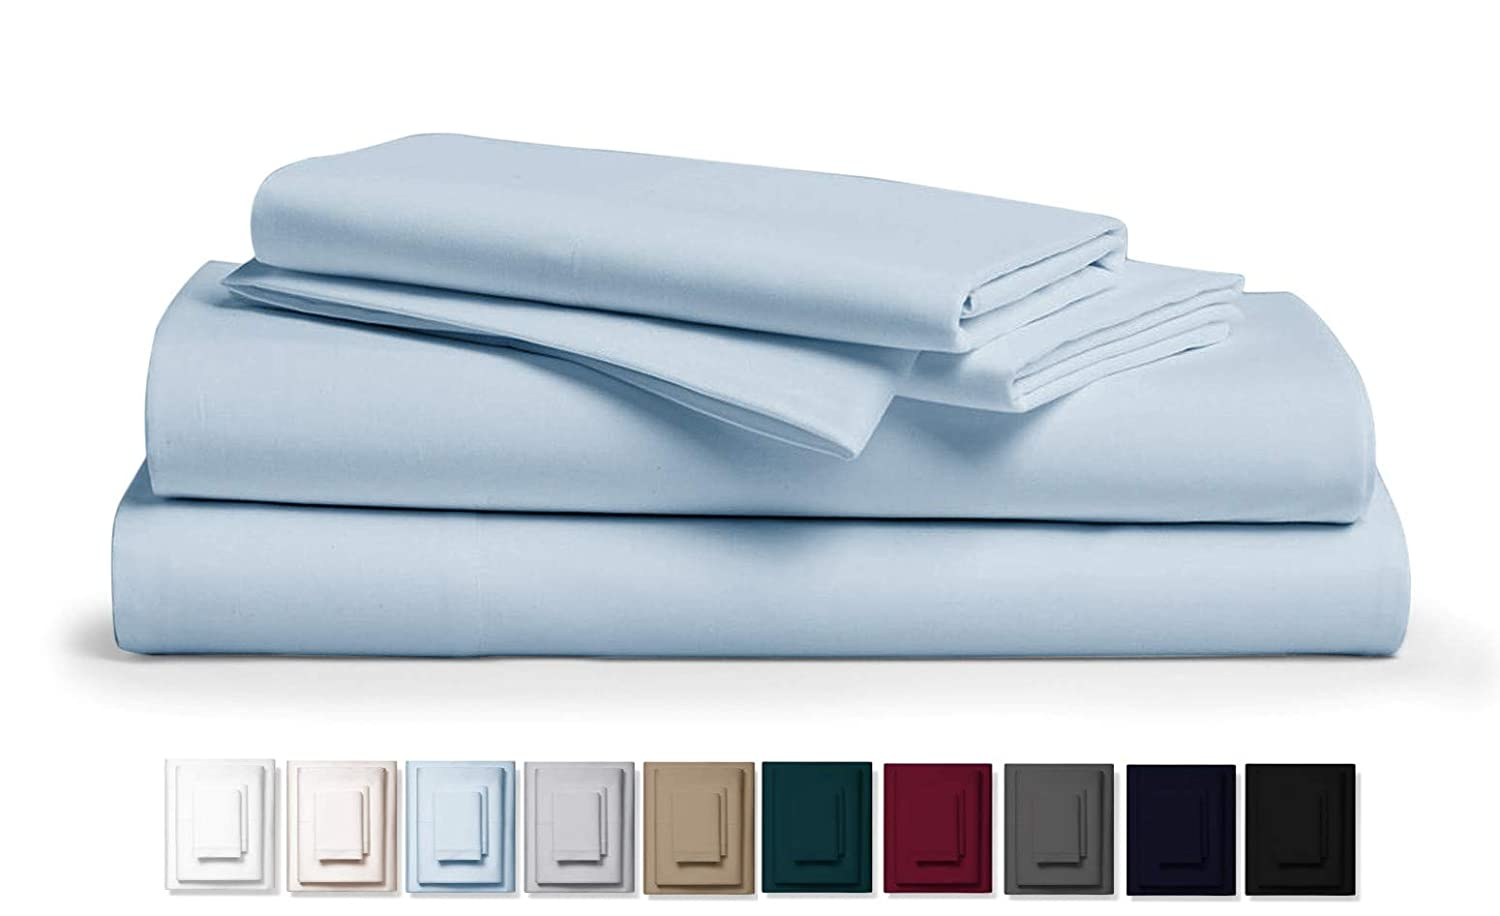 Snuggle Up with our List of The 10 Best Egyptian Cotton Sheets